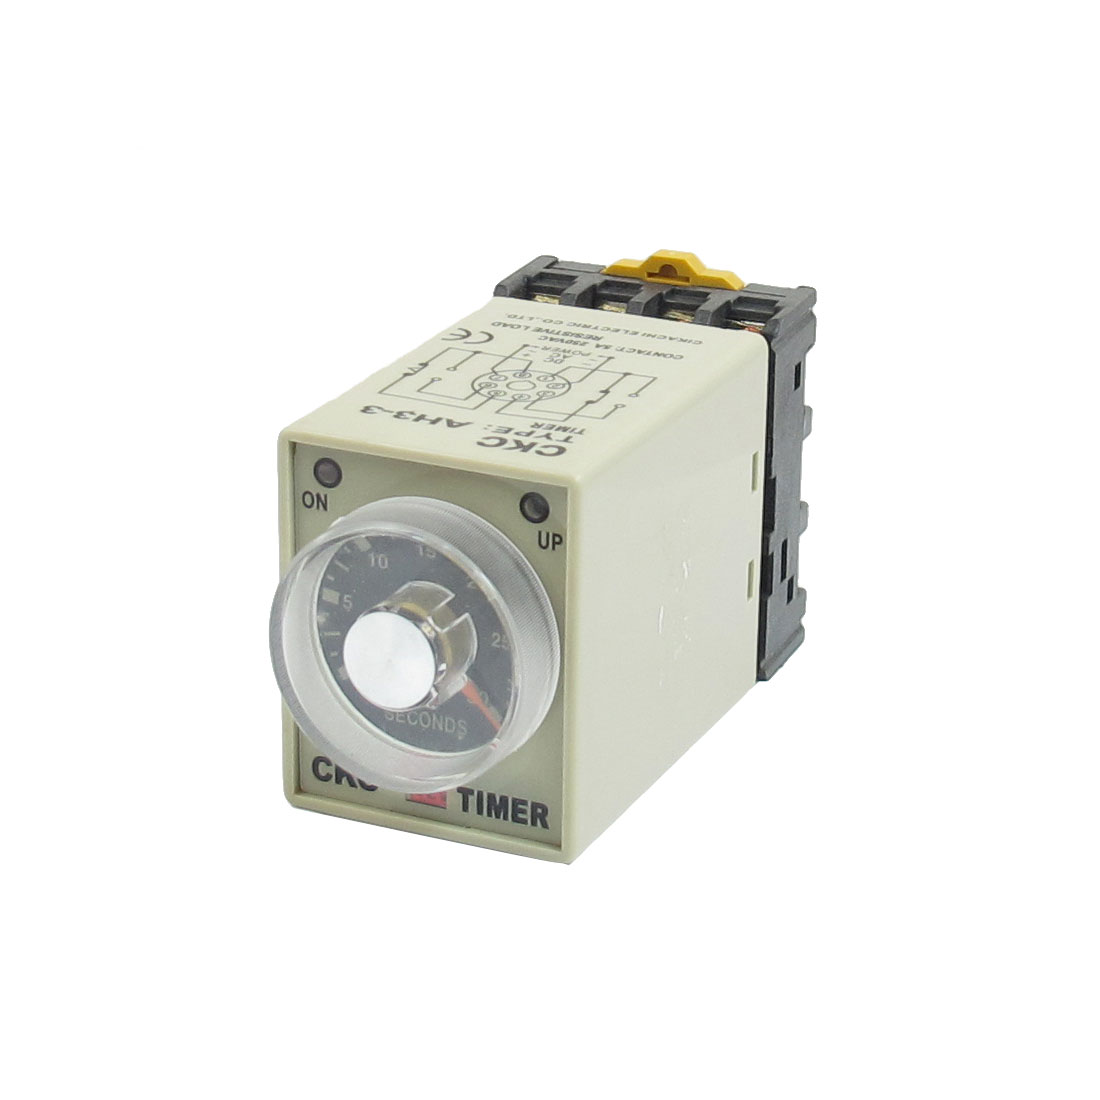 DC 12V 0-30 Seconds 30s Power On Delay Timer Timing Relay DPDT AH3-3 w Base Socket